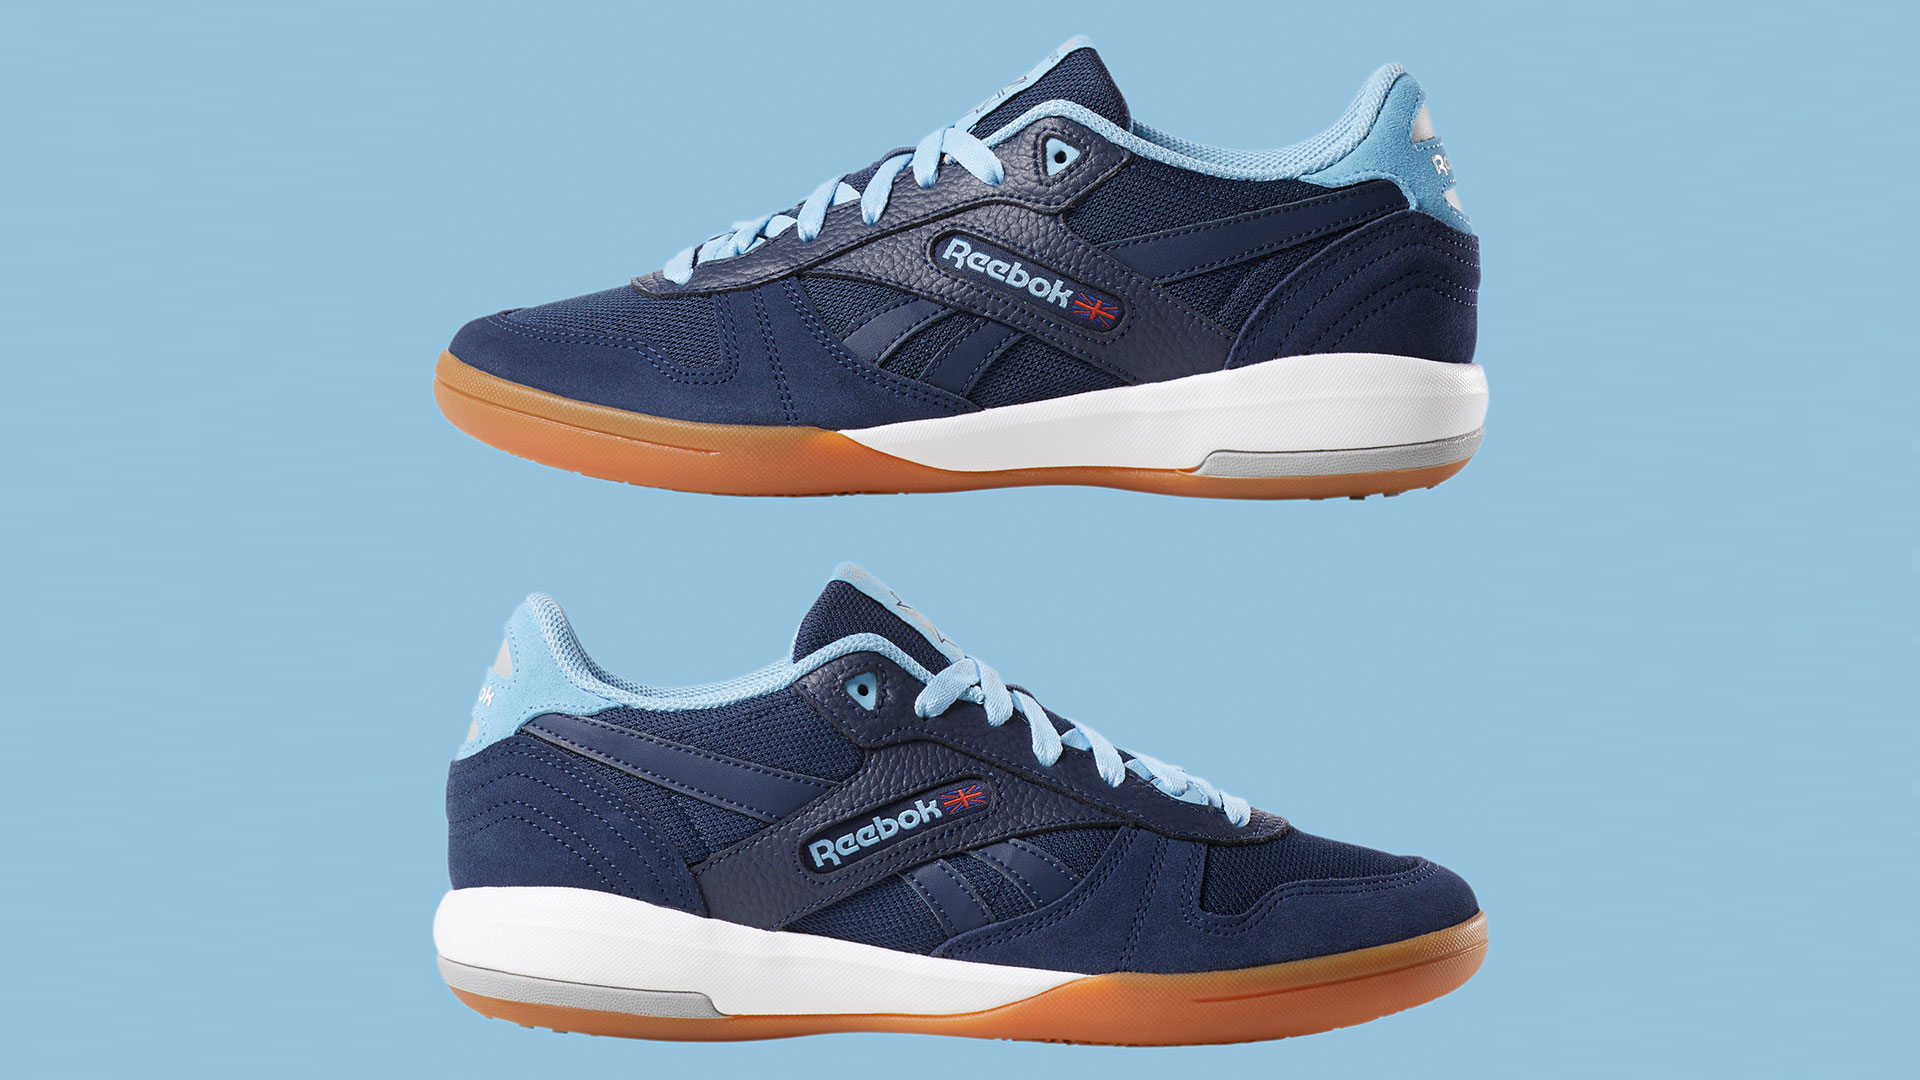 Take Tennis to the Streets With These Court-Ready Kicks